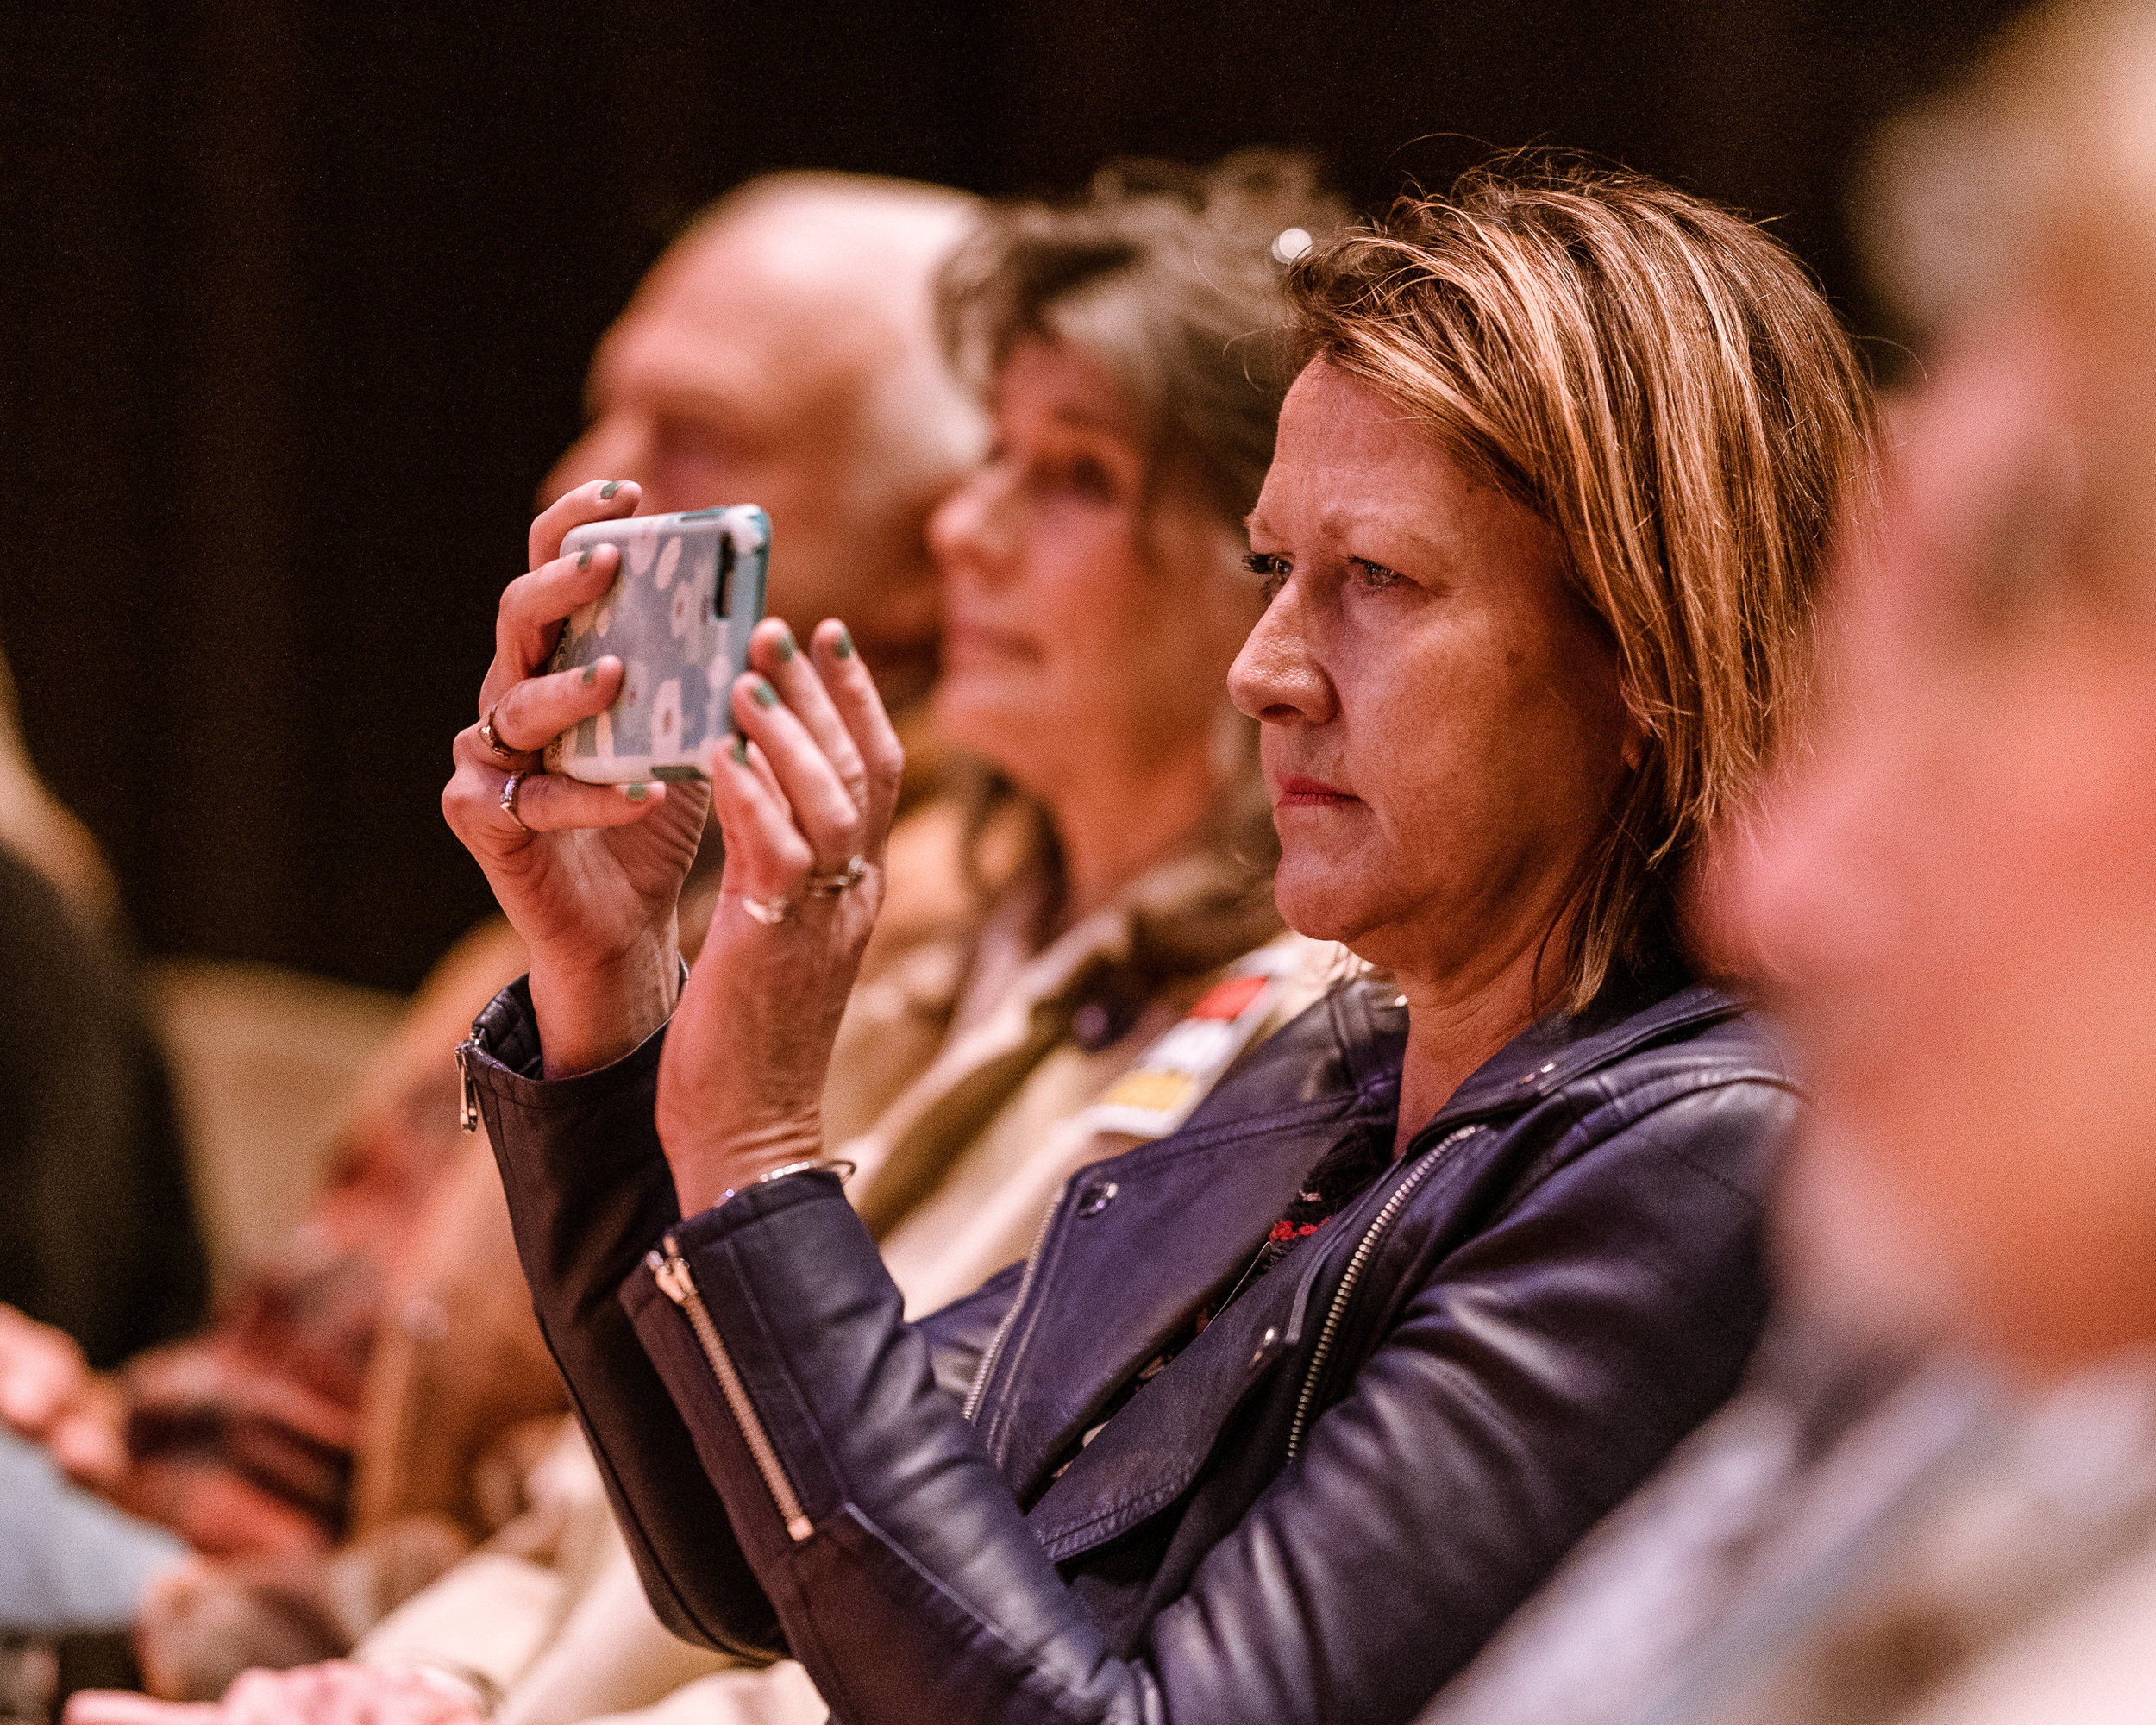 """Lesley O'Toole from Hollywood, by way of Hampshire, England, sits in the front row and documents the discussion on the California Housing Crisis at the SMC Broad Stage on Thursday, May 9, 2019. O'Toole said she was attending tonight because, """"I want to try to save my neighborhood from destruction."""" The SMC Public Policy Institute is presenting its 8th Annual Spring Symposium, """"There Goes the Neighborhood, Part II: How might policy approaches prevent displacement in neighborhoods affected by gentrification?"""" from May 4-9. Tonight's final event in the series is """"Where Goes the Road to Solving California's Housing Crisis? A Keynote Discussion with Legislative Leaders."""" The panel includes California state legislators Senator Ben Allen (SD26 – Santa Monica) and Senator Scott Weiner (SD11 – San Francisco), author of SB 50 which proposes bold approaches to California's housing issues, and Santa Monica Mayor Gleam Davis, a former Co-Chair of Santa Monicans for Renters' Rights and leading advocate for Santa Monica's innovative policy solutions and funding for affordable housing."""" (Glenn Zucman/The Corsair)"""